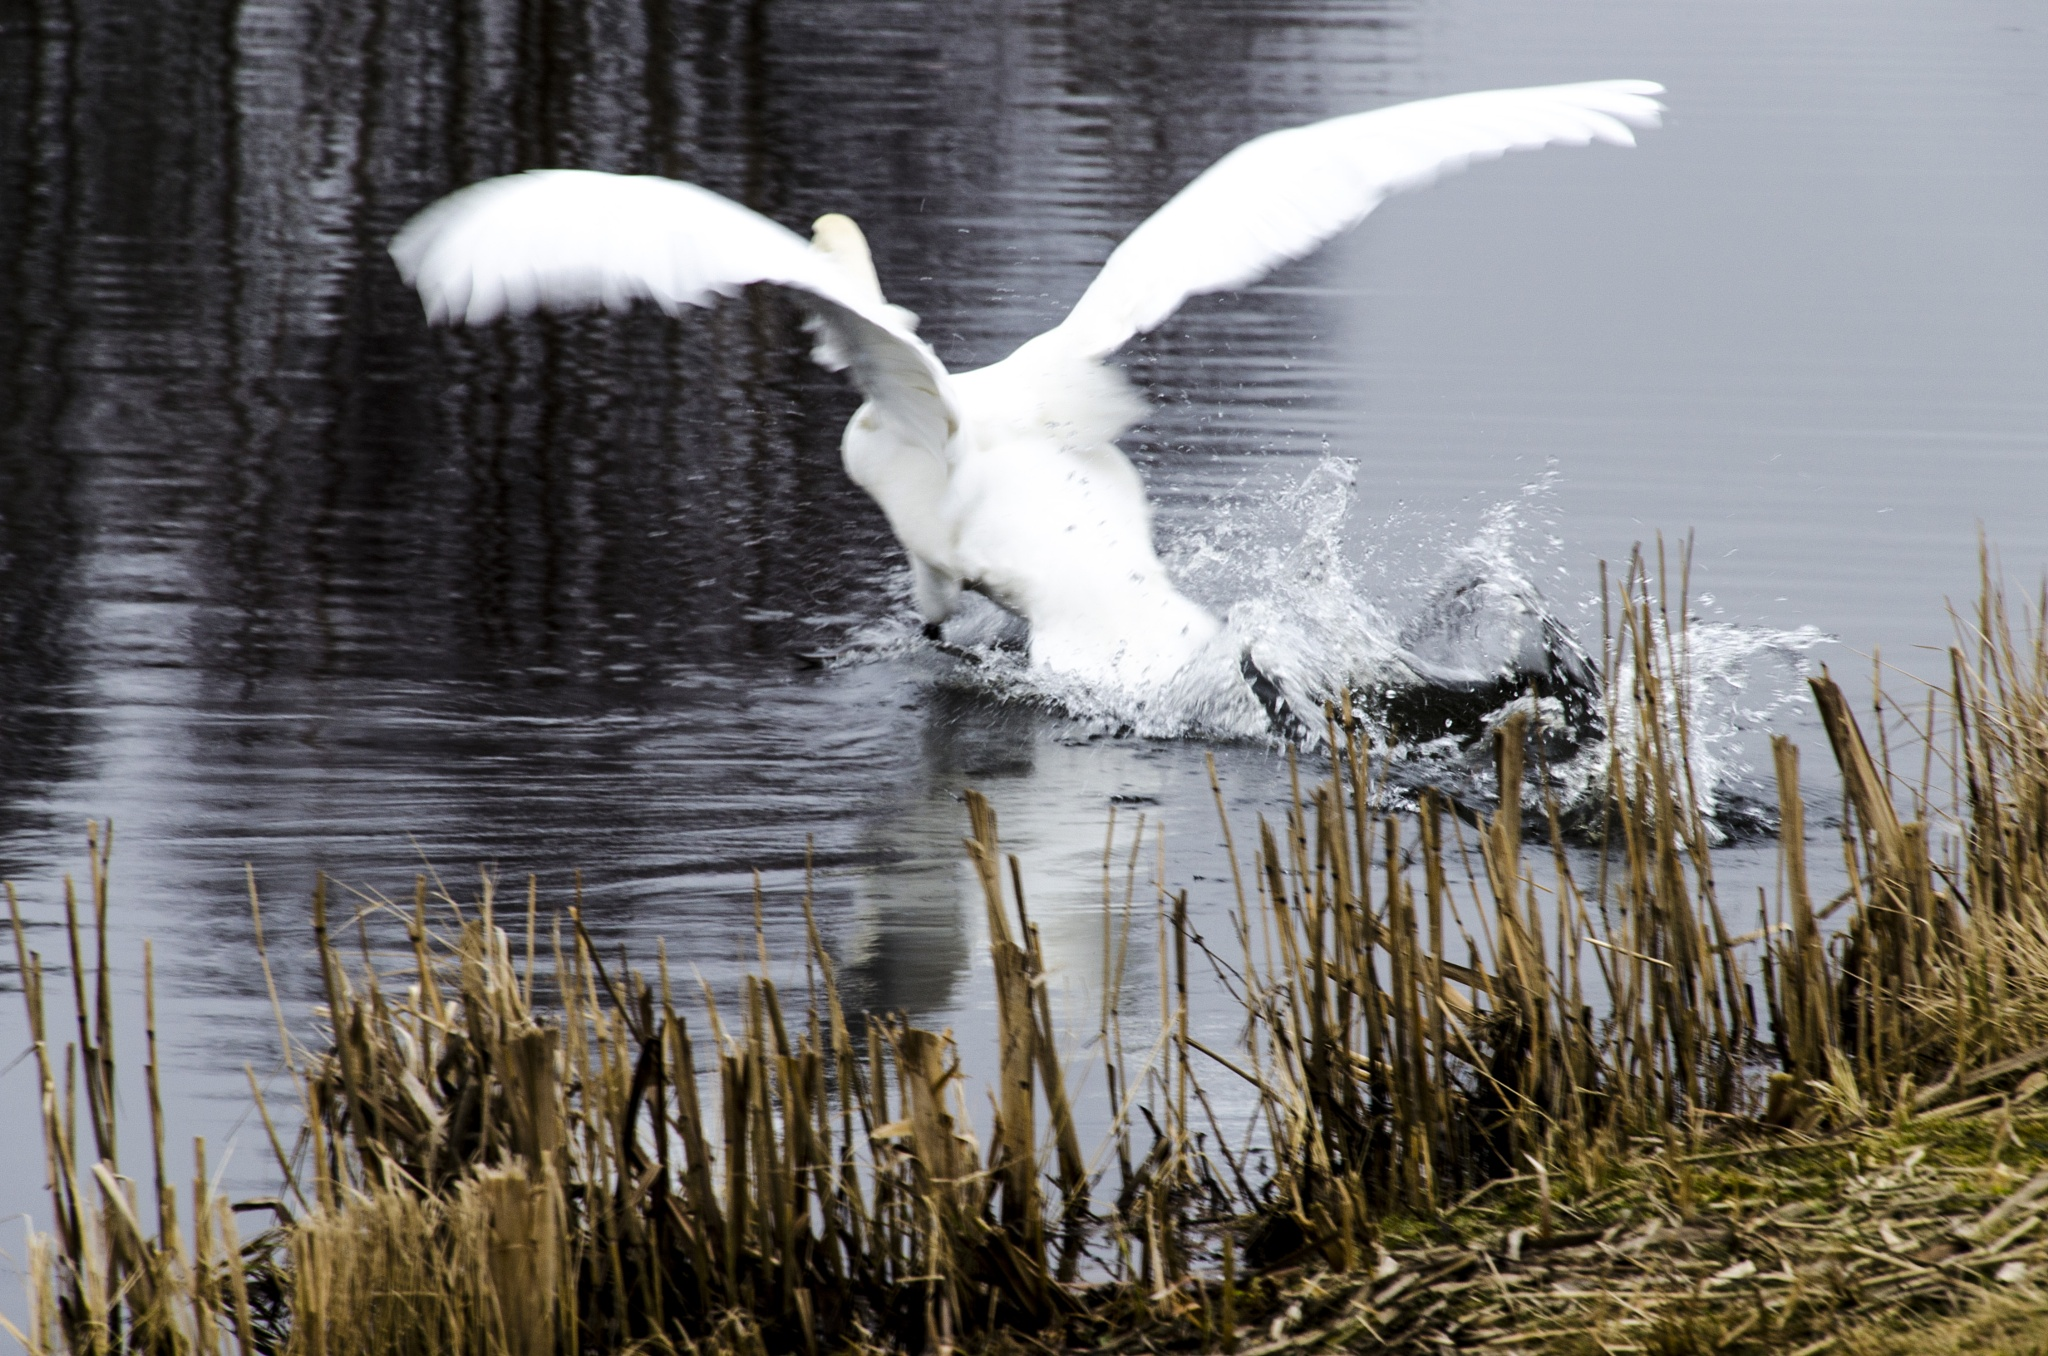 Fleeing swan with motion blur by Johnny Lythell